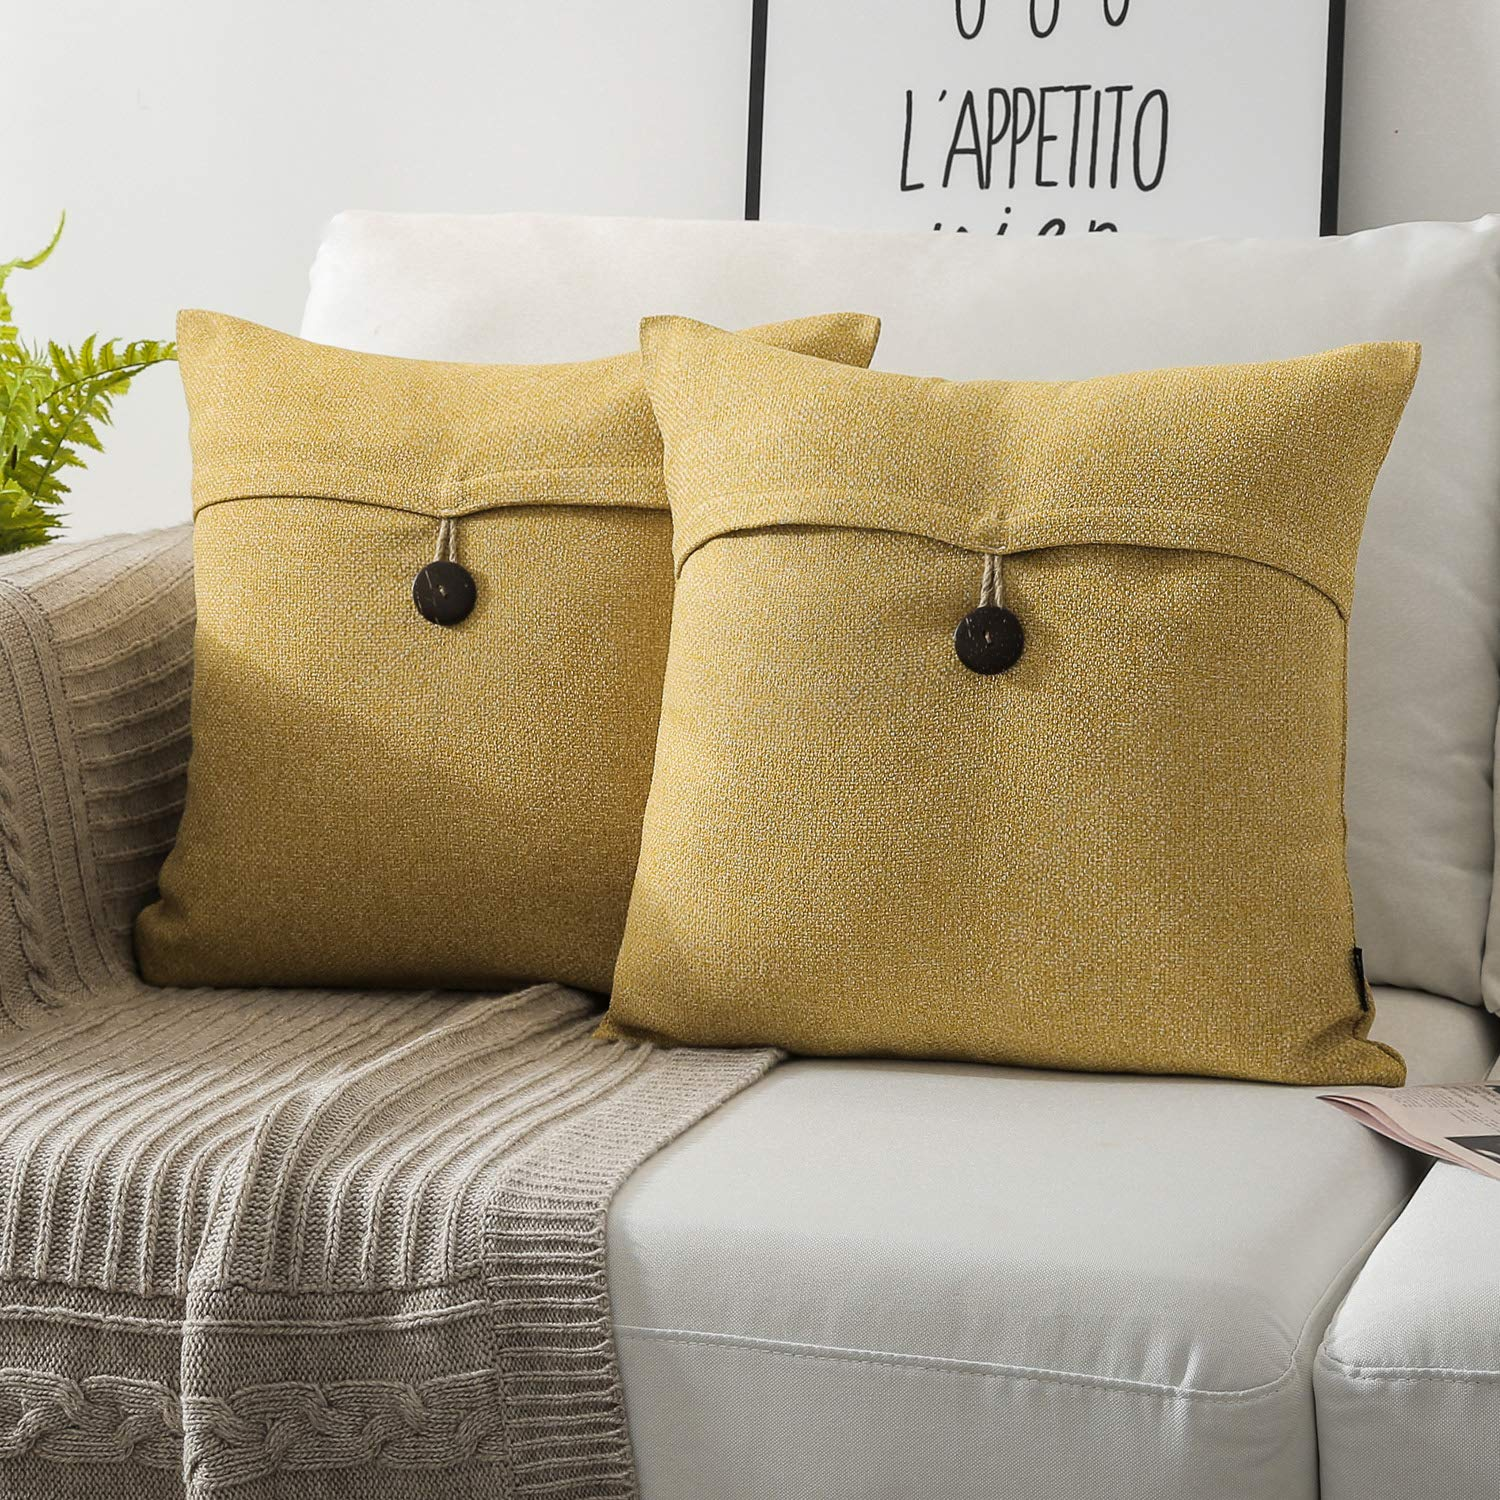 Phantoscope Pack of 2 Farmhouse Throw Pillow Covers Button Vintage Linen Decorative Pillow Cases for Couch Bed and Chair Dark Yellow 18 x 18 inches 45 x 45 cm